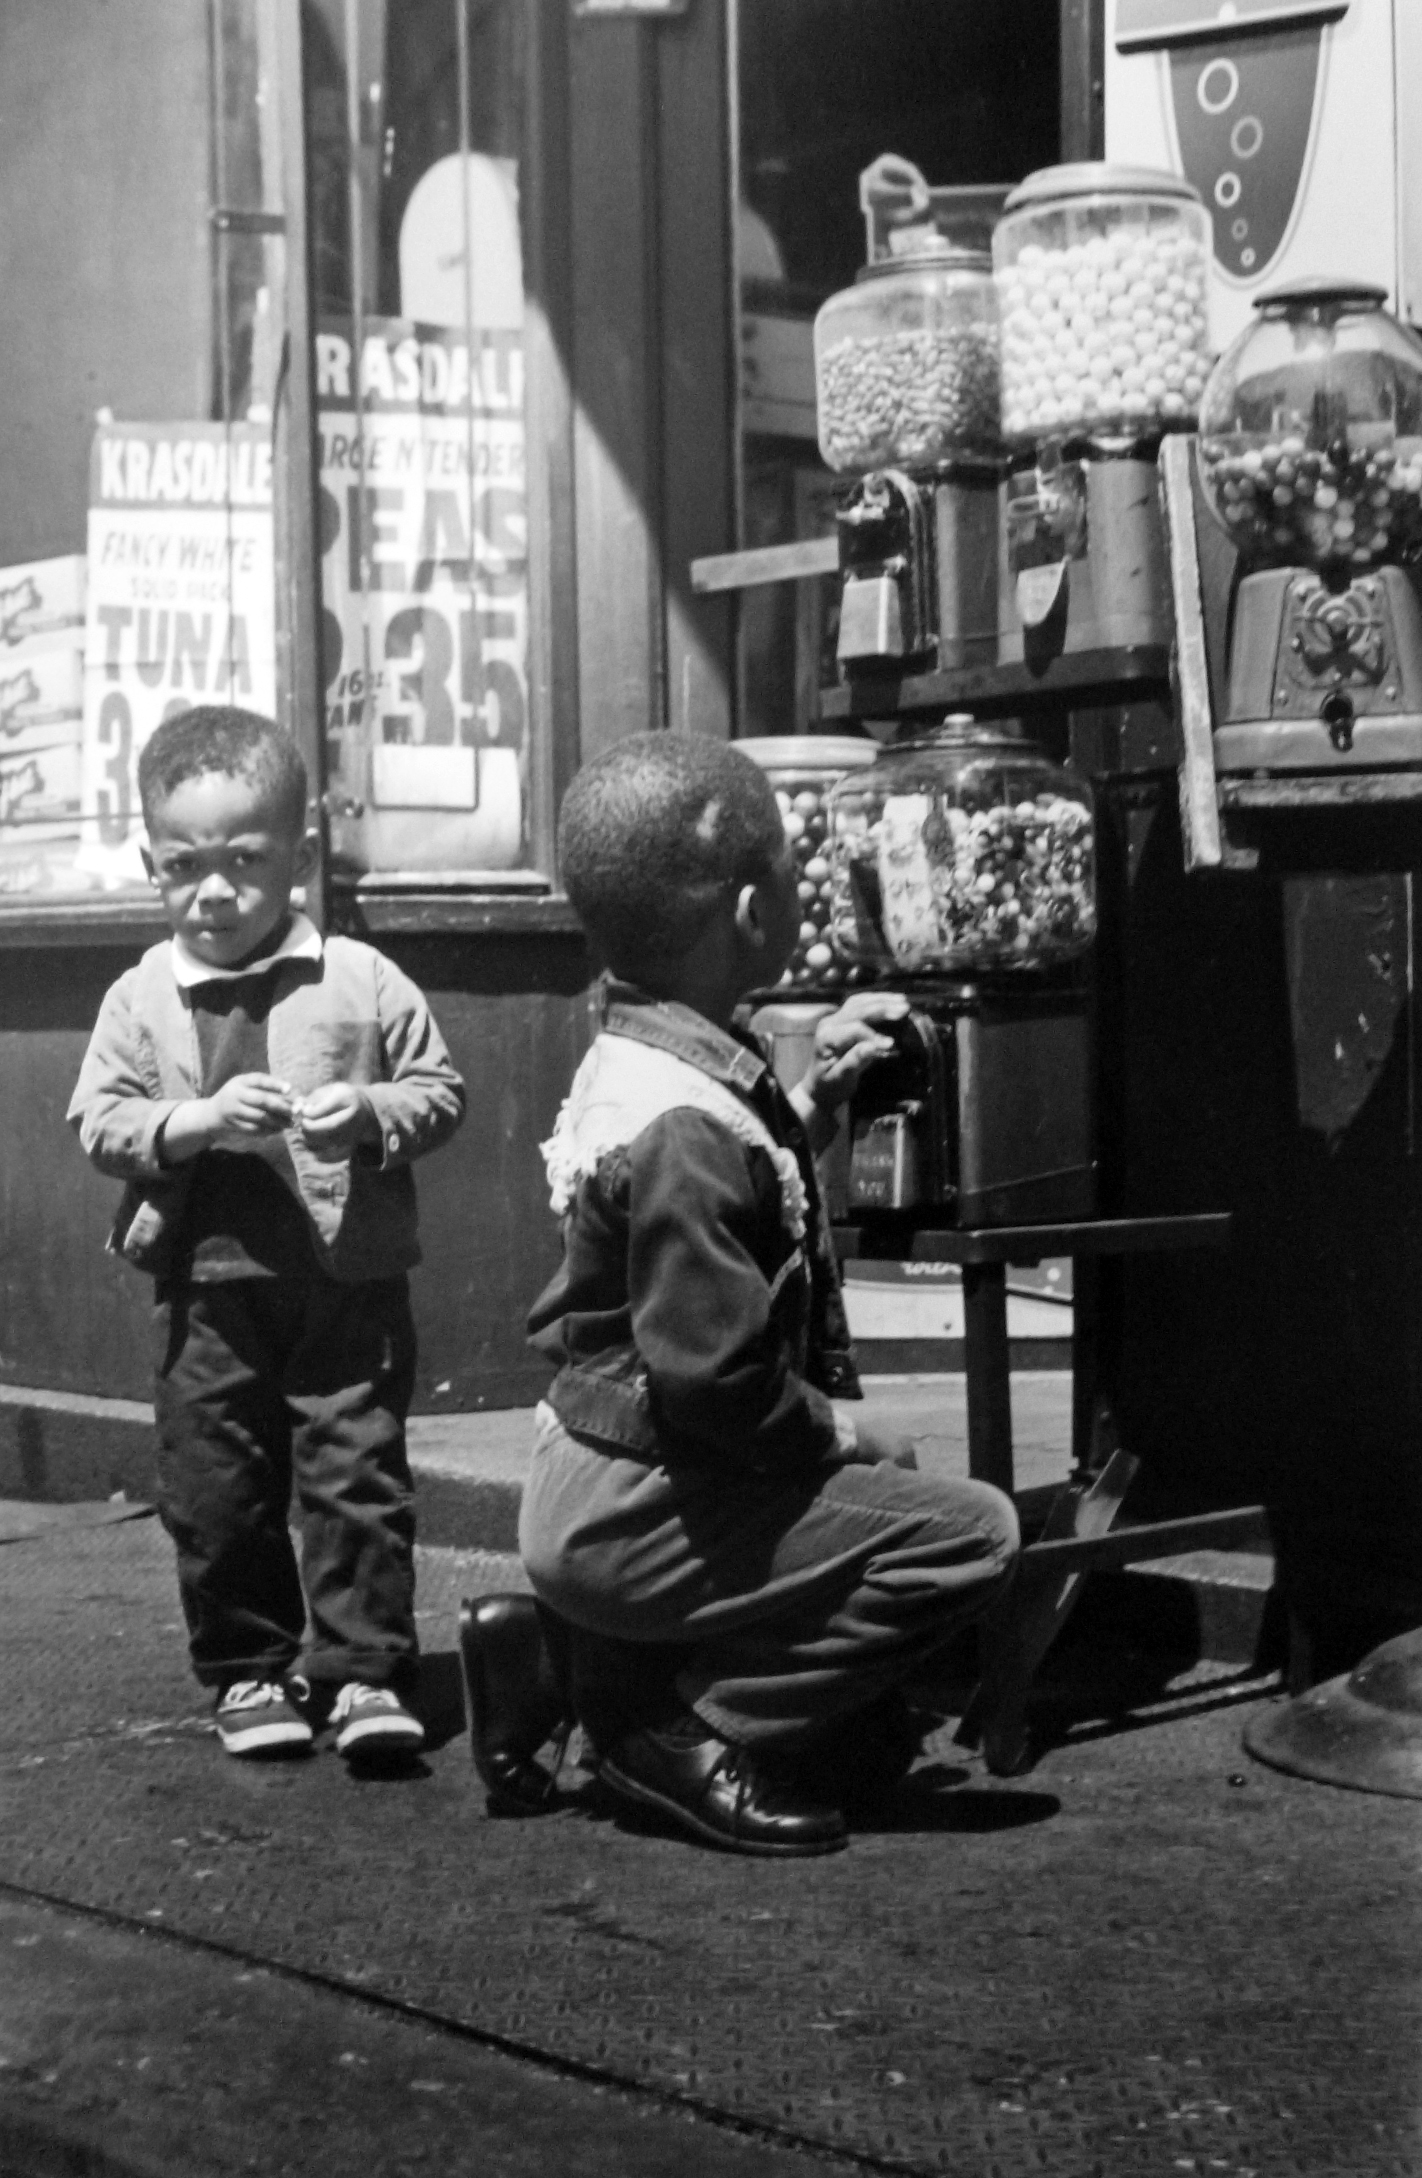 Untitled (boys at gumball machine, Lower East Side), 1961